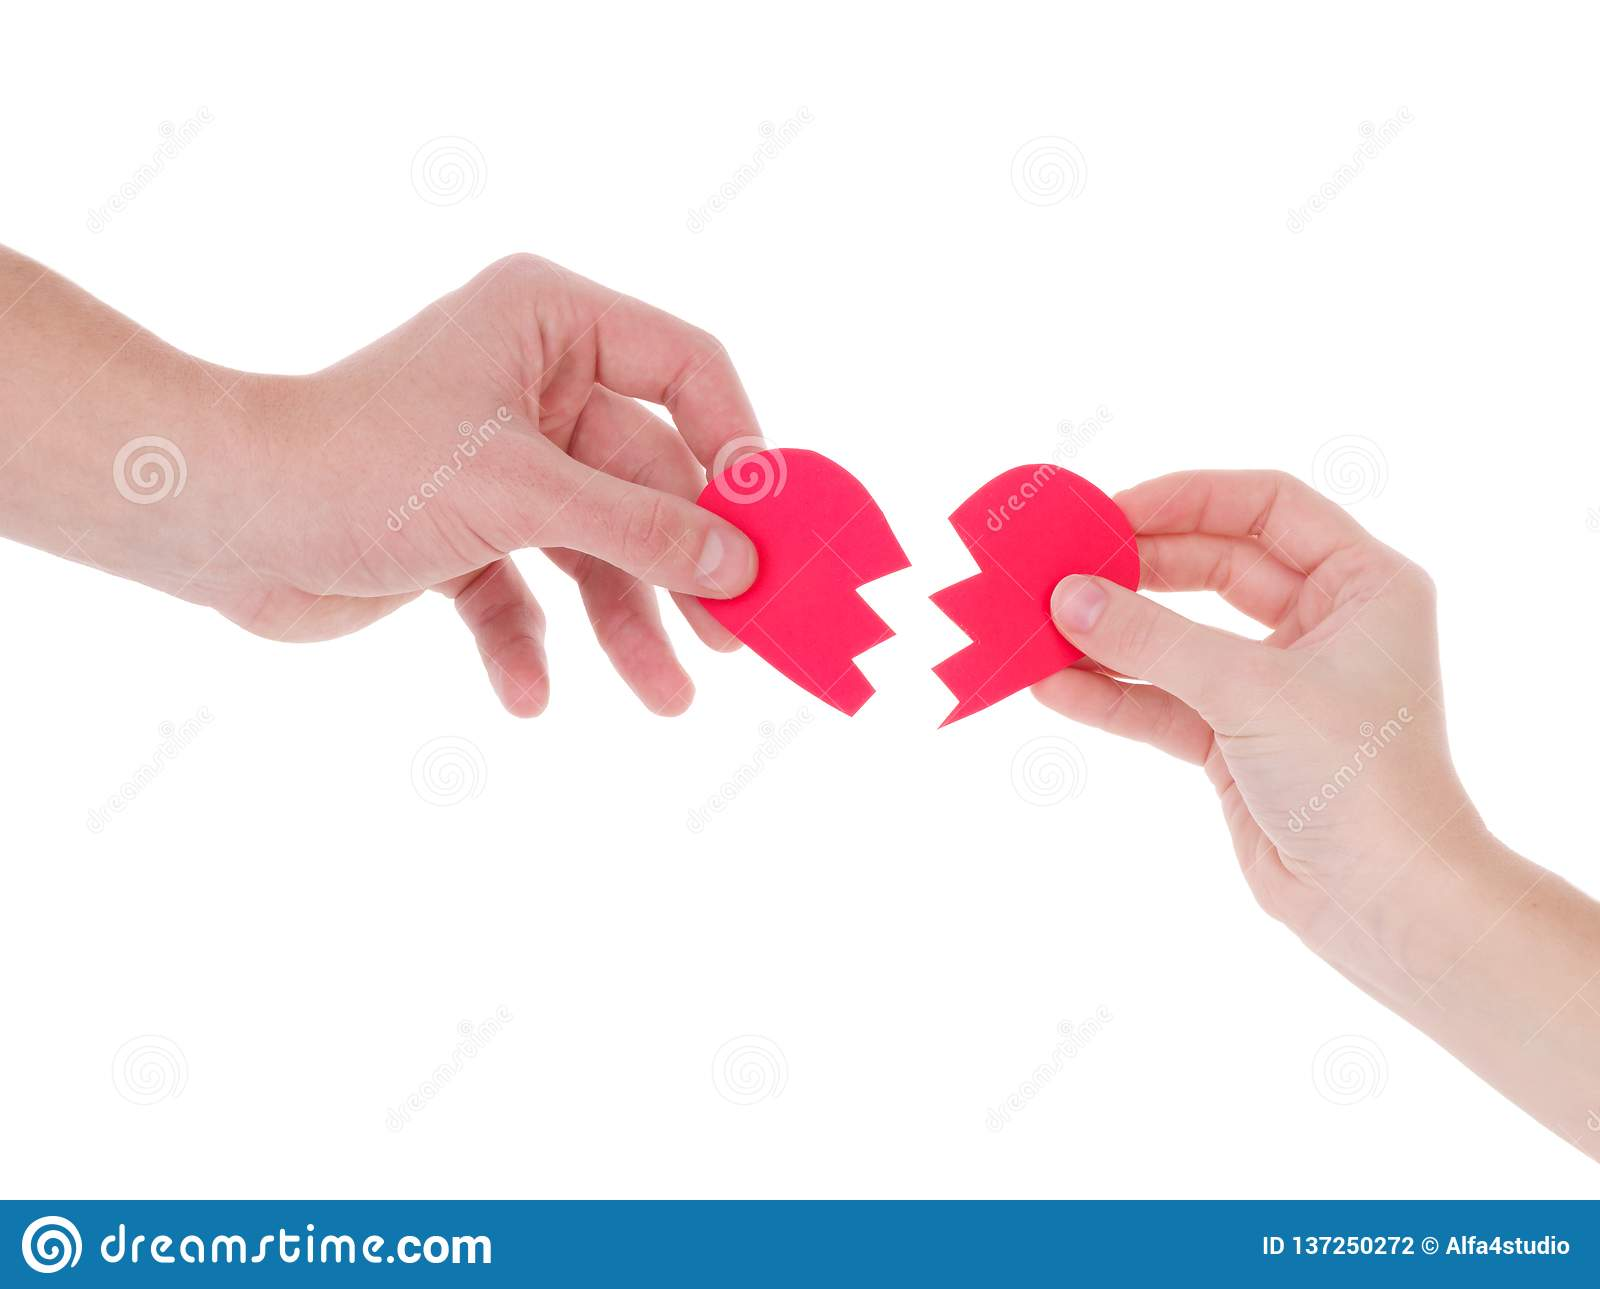 Hand holding a red heart.the concept of love, Valentines day, symbol and romantic. red heart for gift